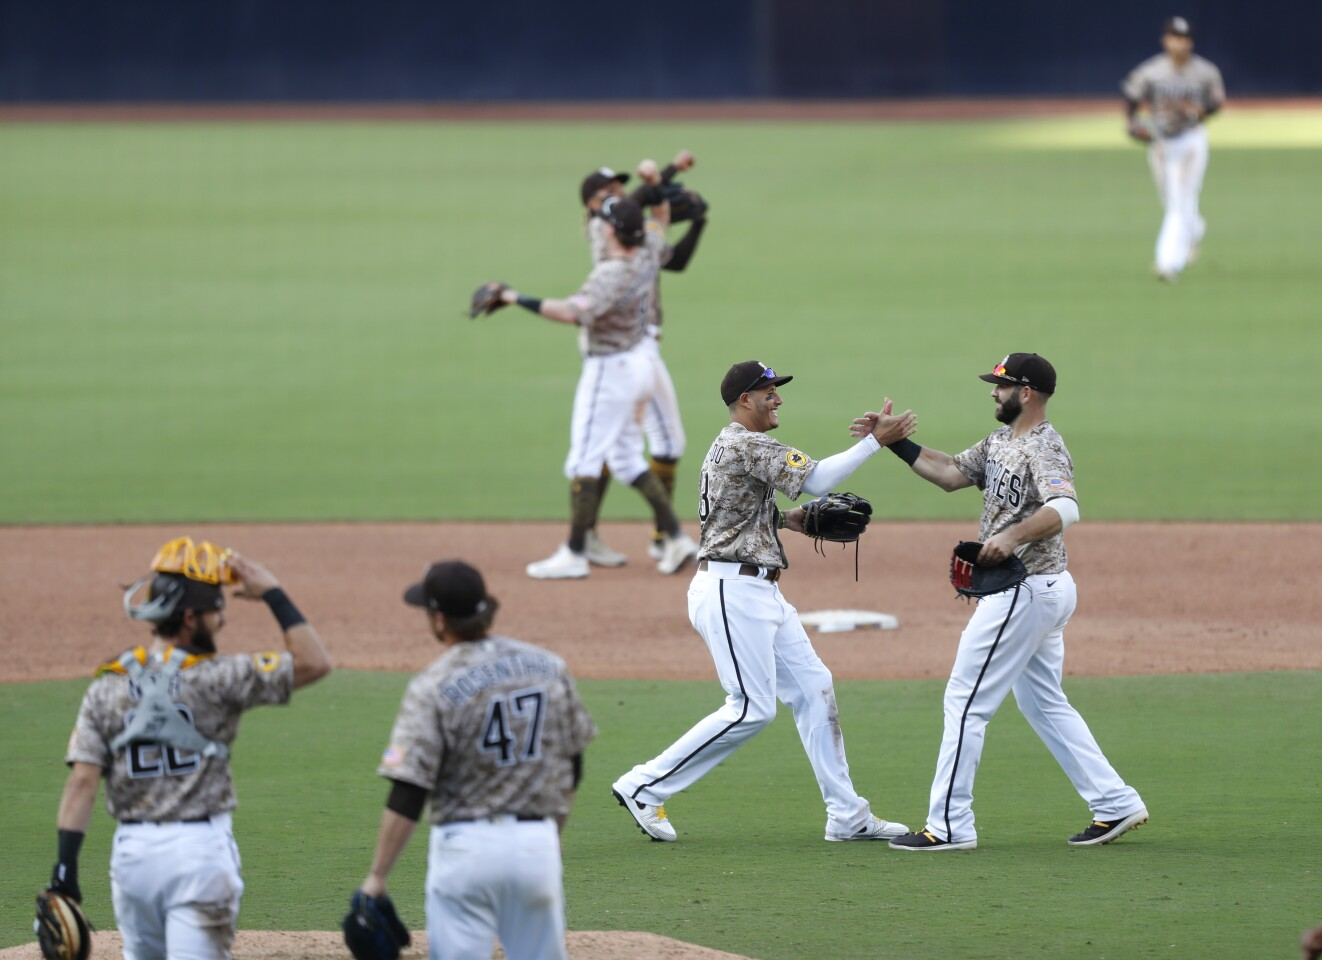 The San Diego Padres, including Manny Machado and Mitch Moreland, center, celebrate after beating the Seattle Mariners